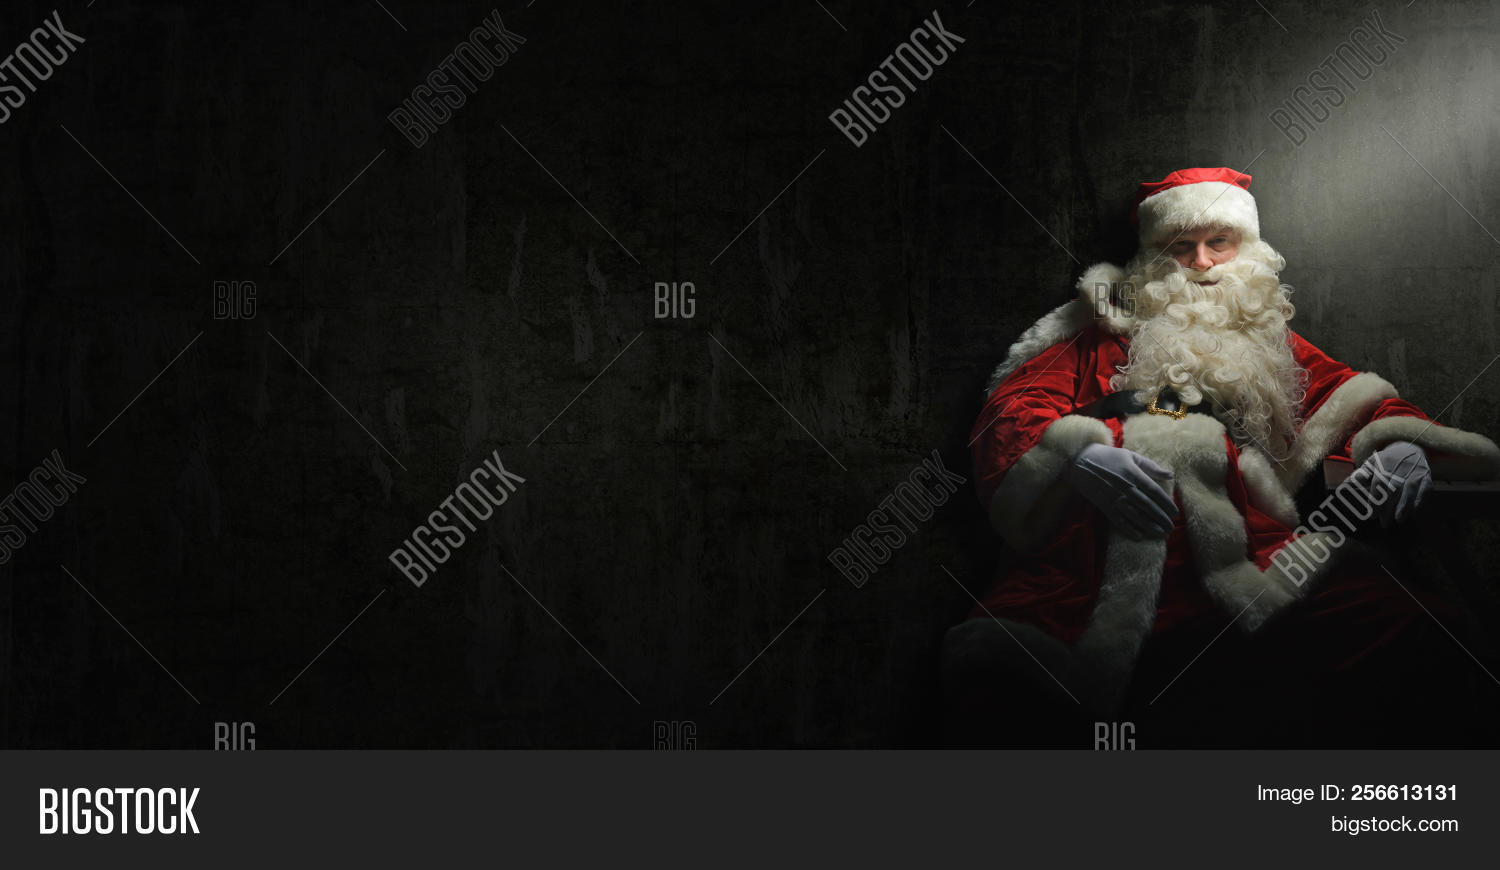 Santa Claus Is Drunk Or Has A Burnout And Needs A Break After Christmas.